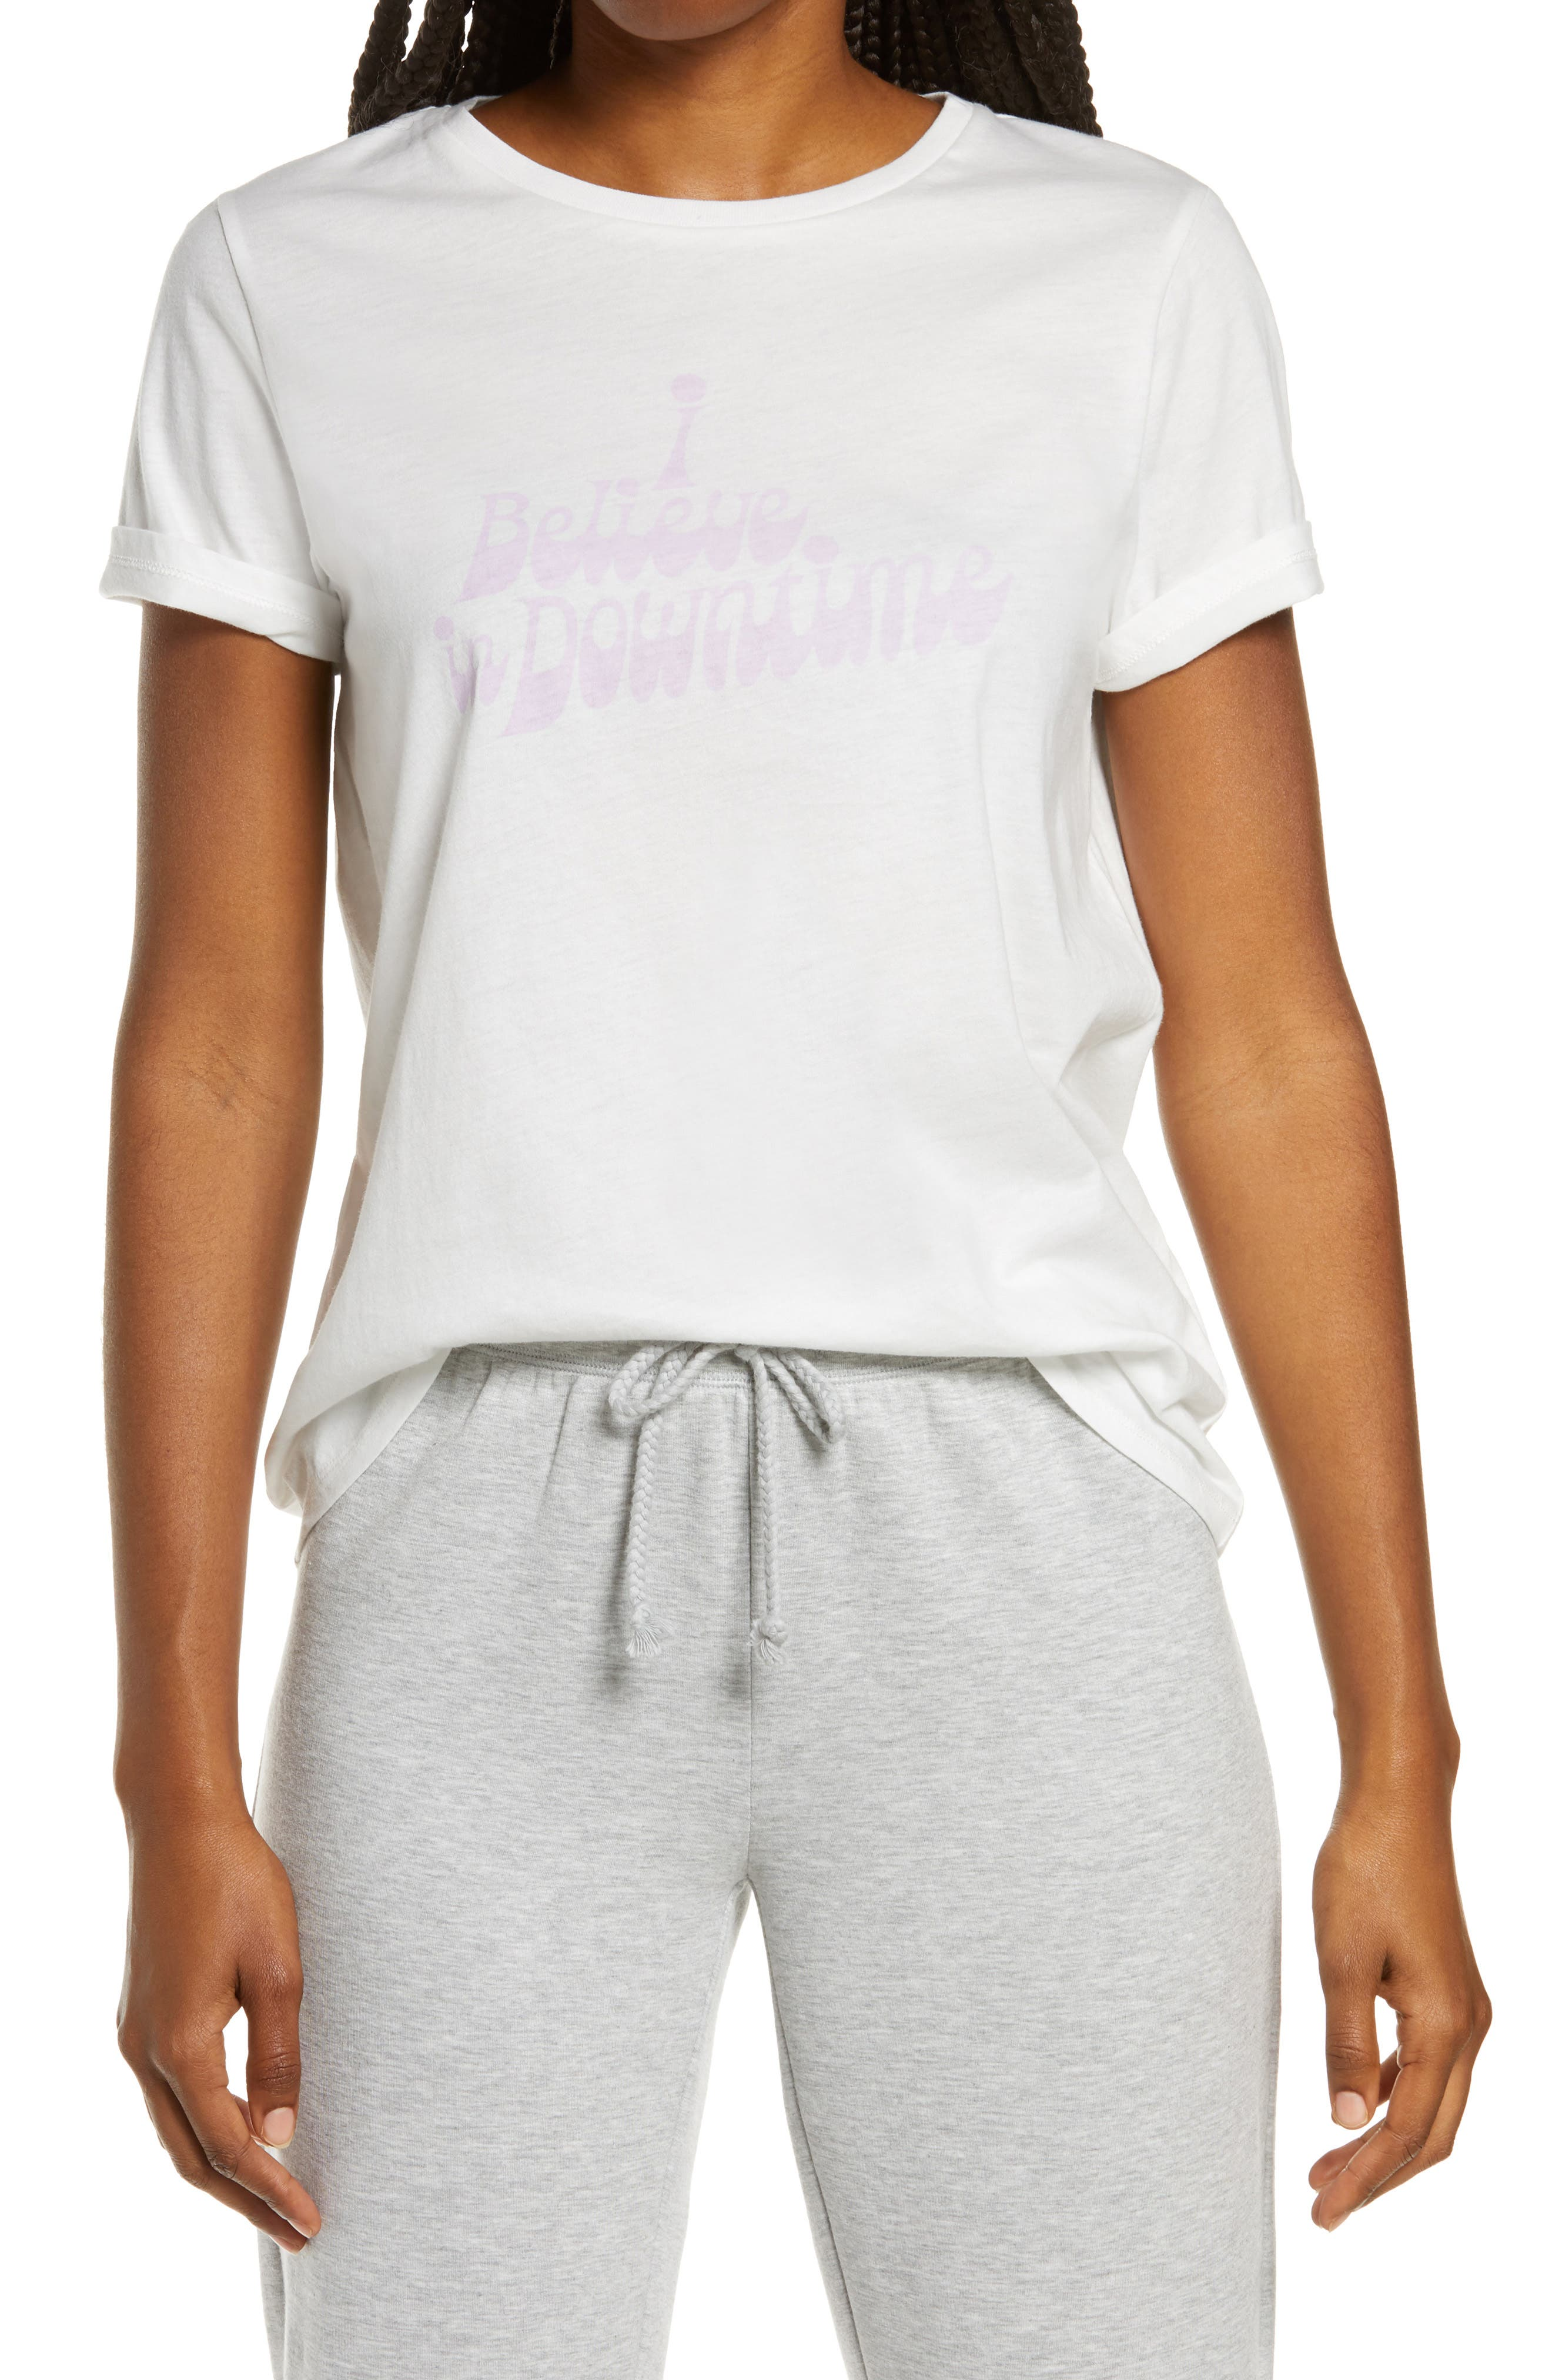 Women's Ban. do Downtime Classic Graphic Tee